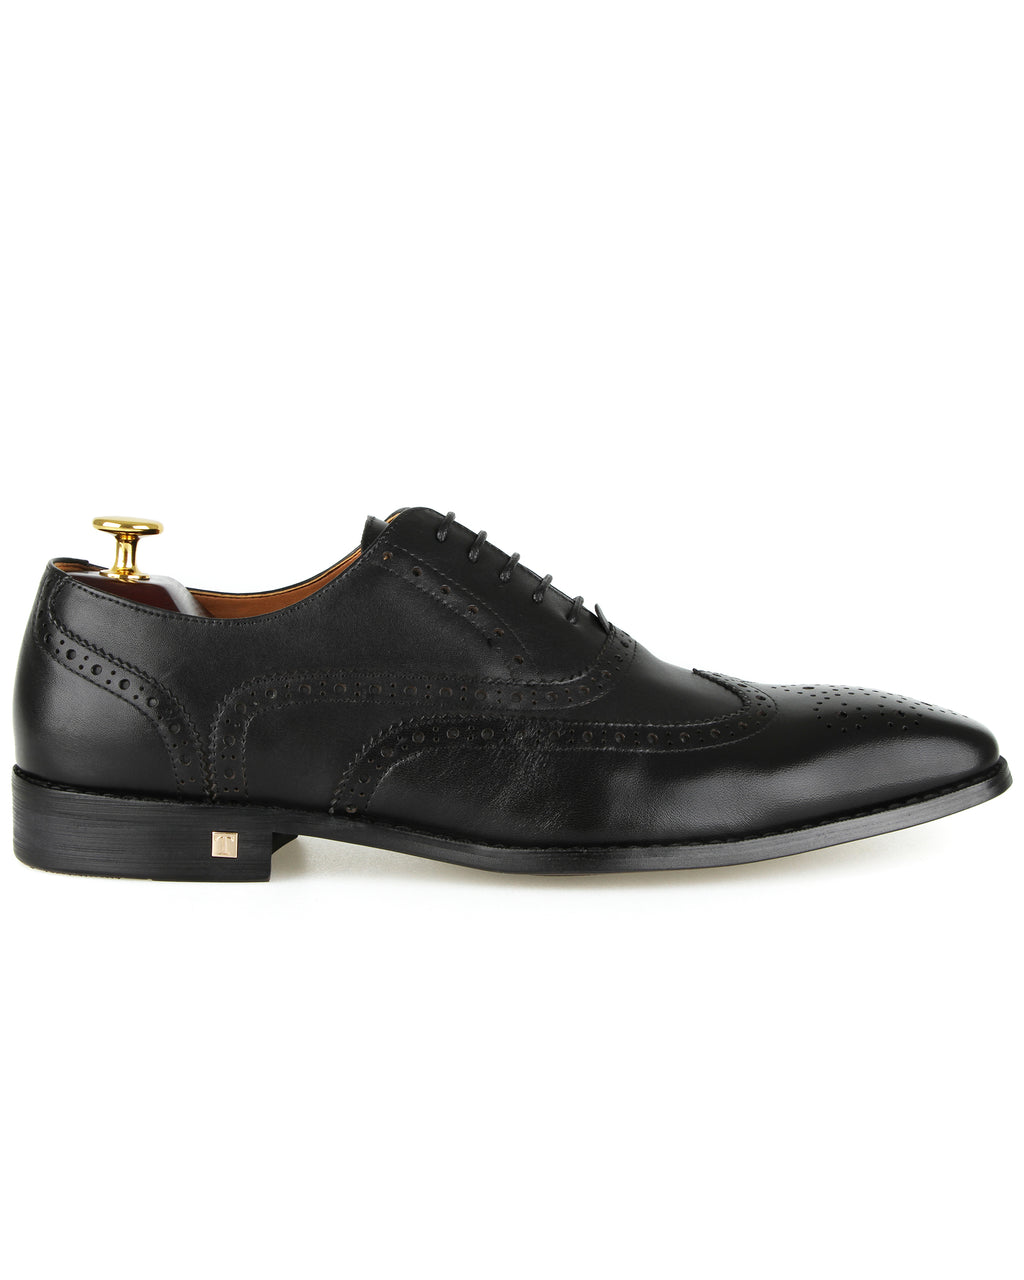 Tomaz F220 Formal Wingtip Oxford (Black)